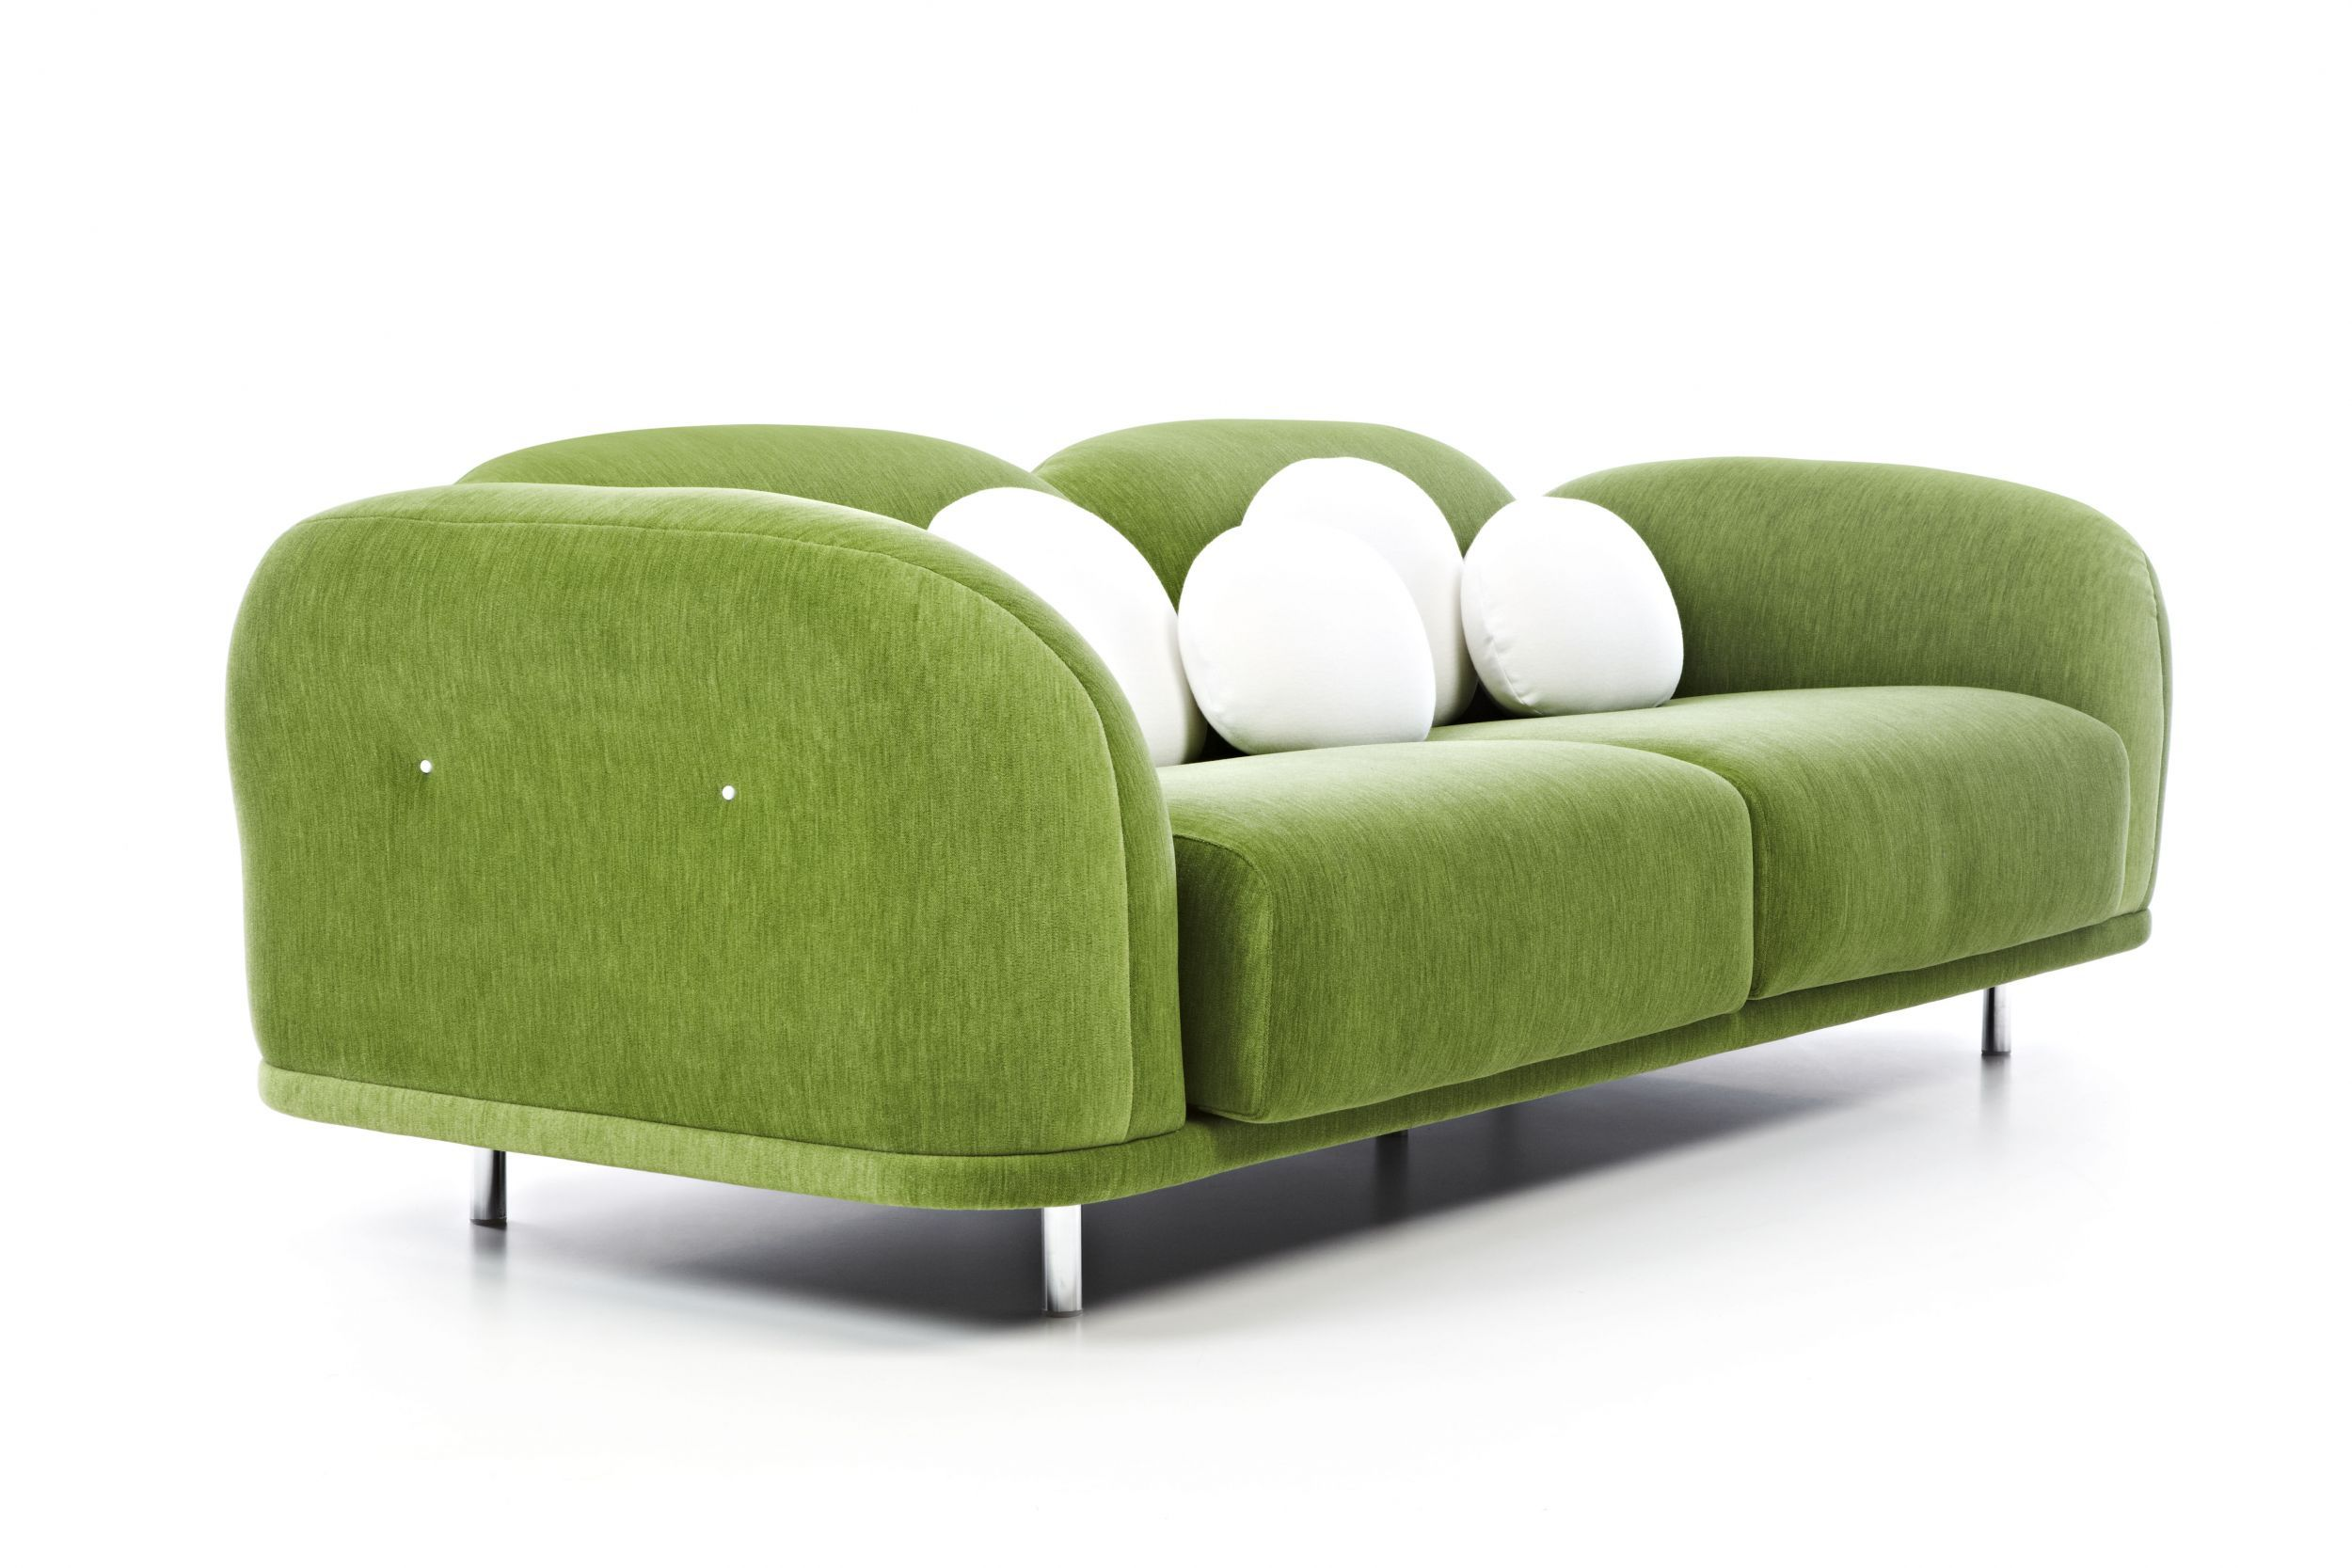 Recliner Sofa Marcel Wanders Cloud Sofa for Moooi